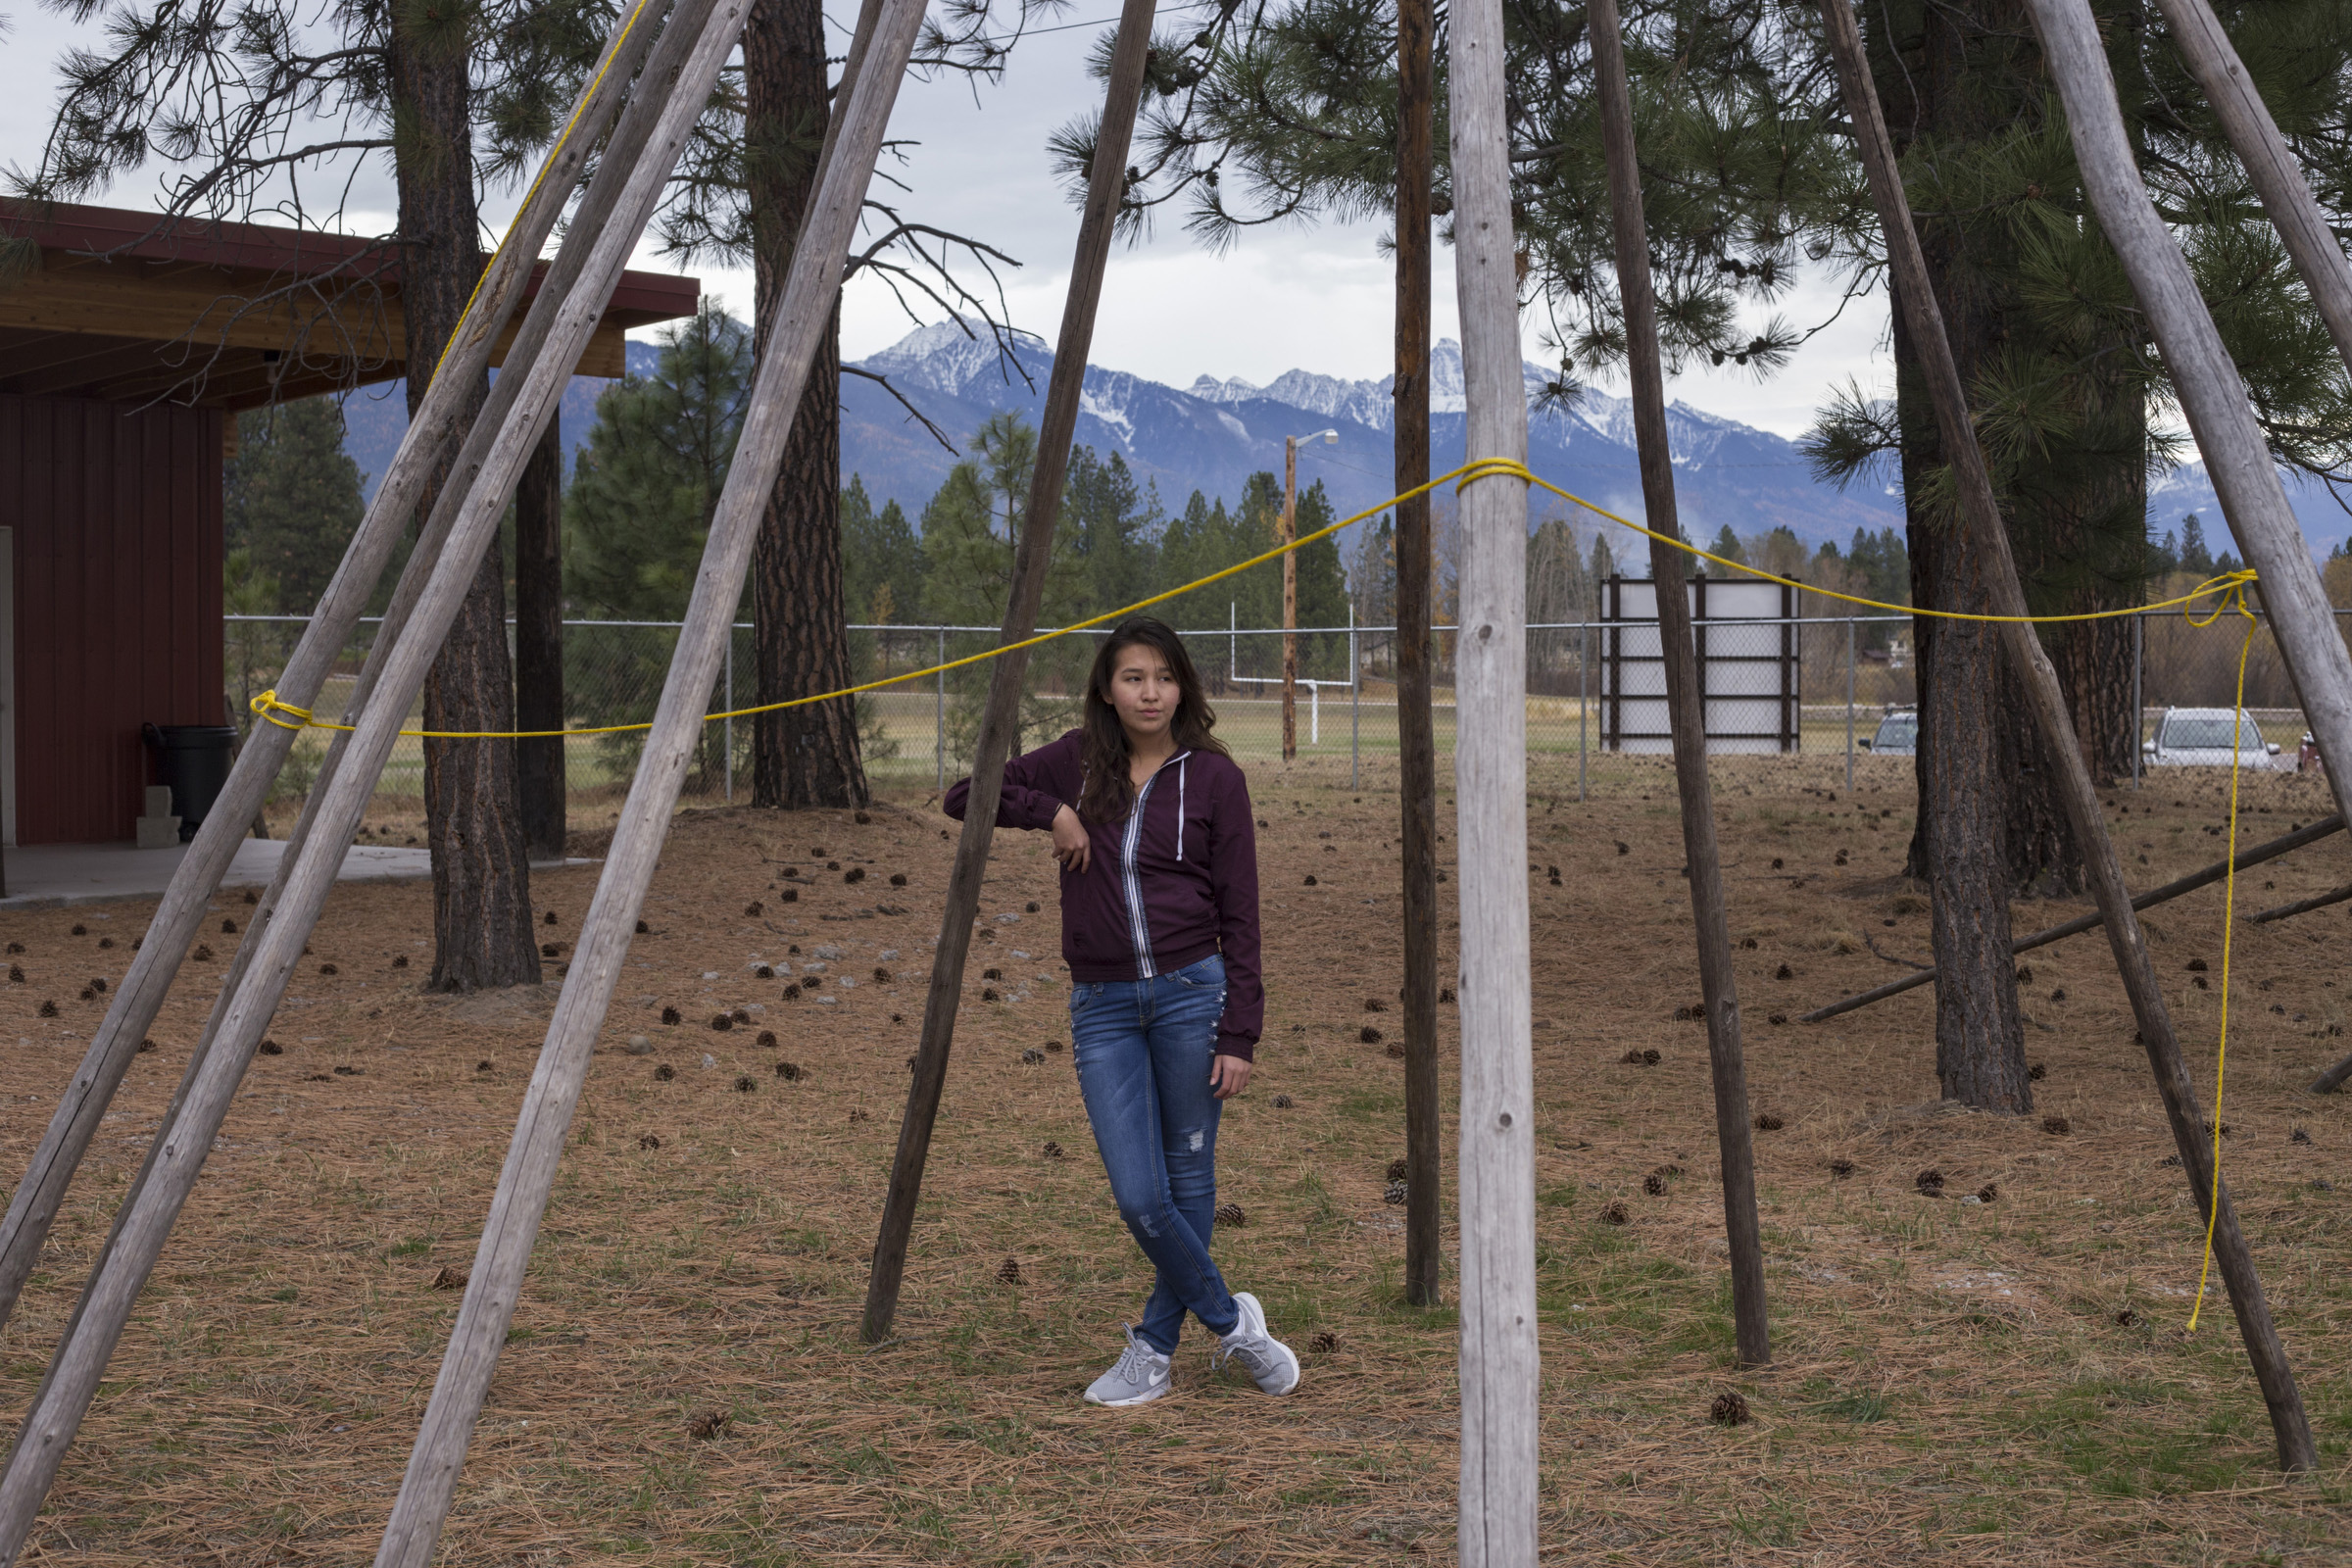 Nikki Burke, 17, outside of her school, Two Eagle River High School, in Pablo, Montana, on Wednesday, October 25, 2017. (Photo by Brittany Greeson)